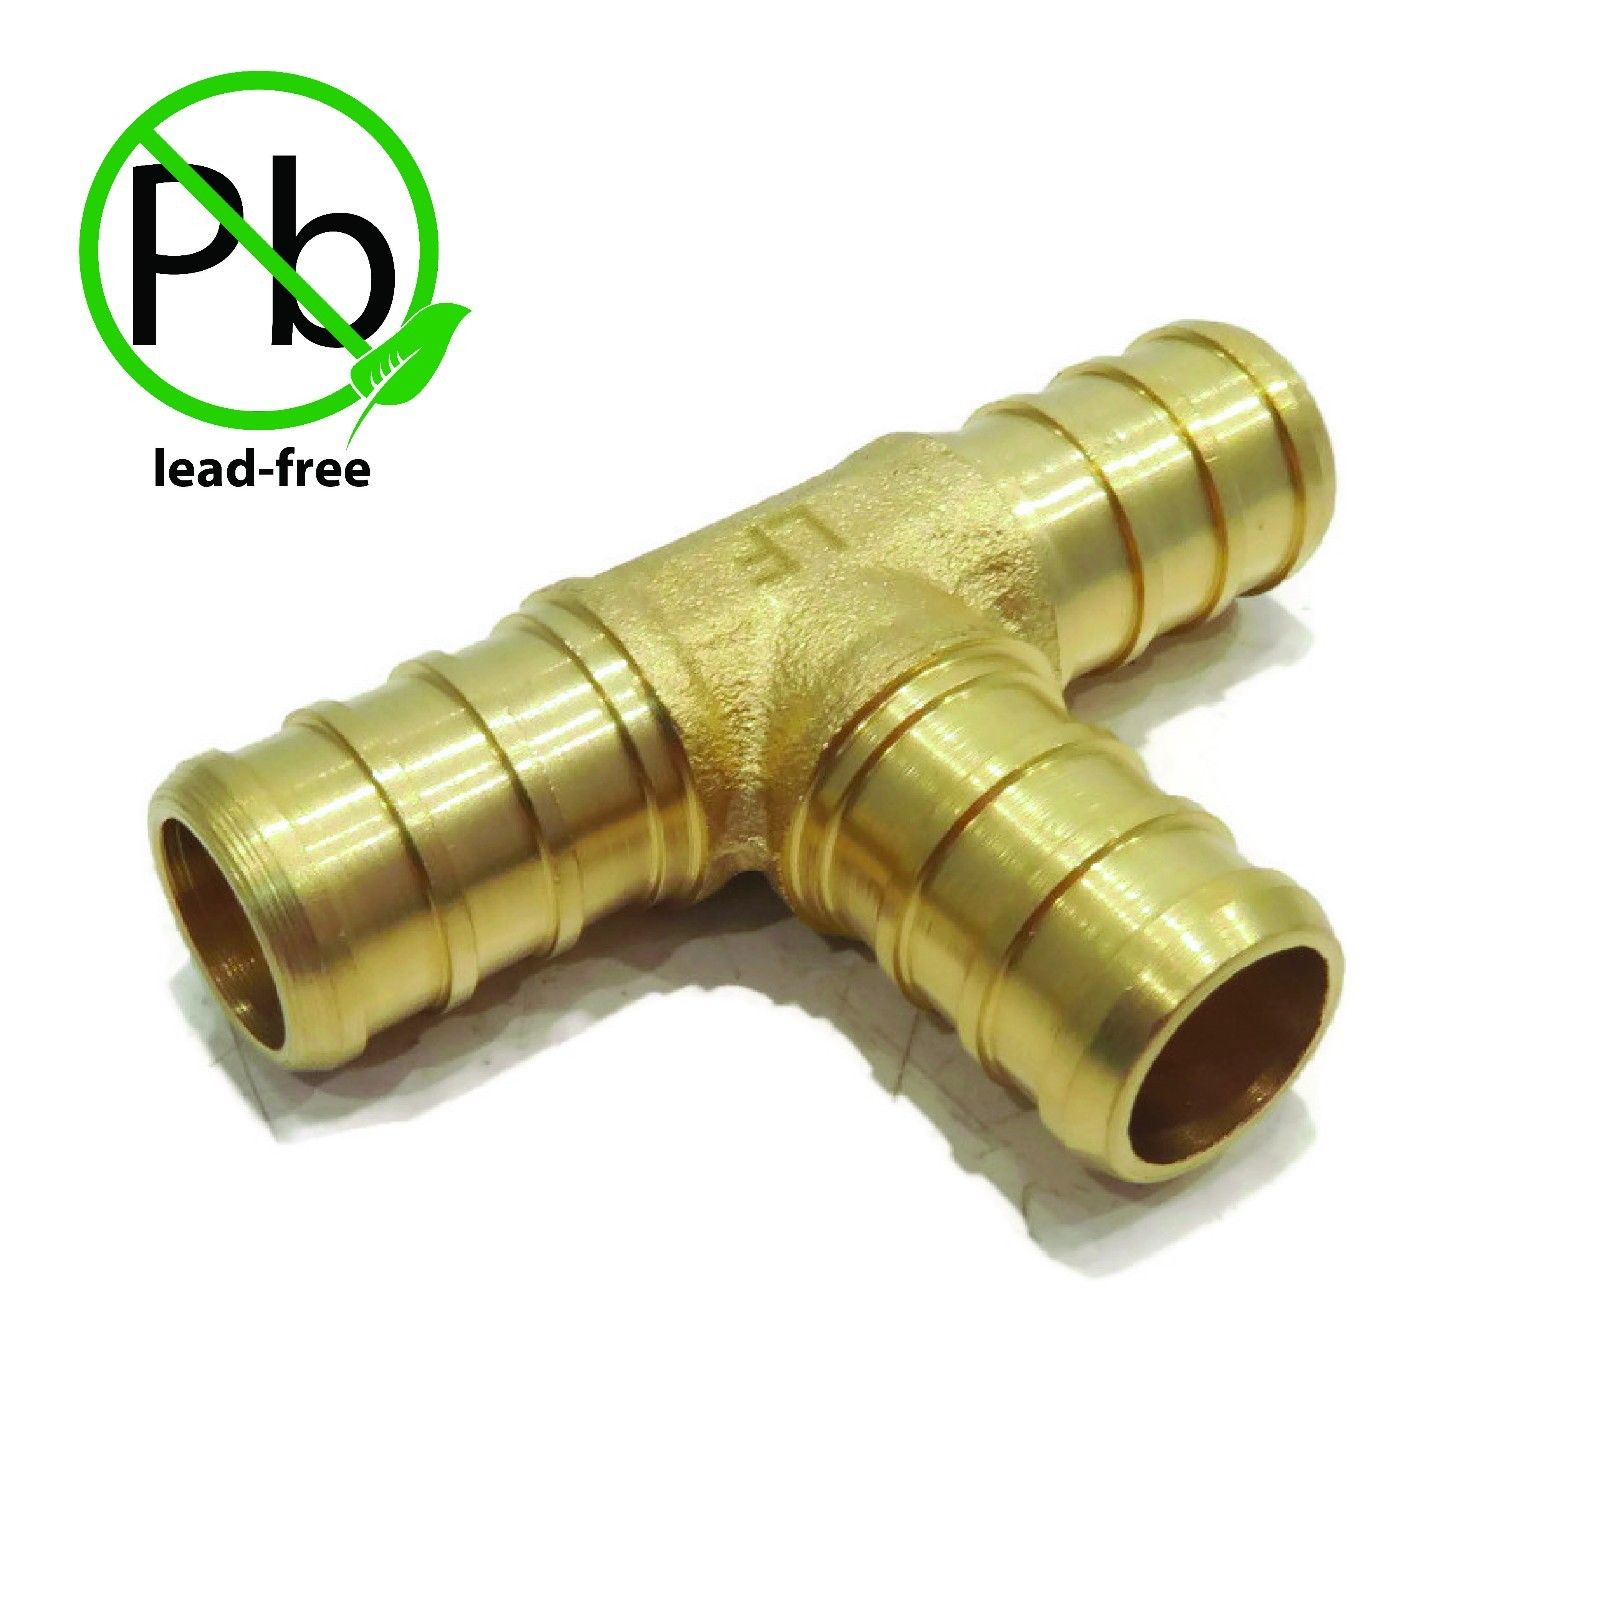 "1/2"" x 1/2"" x 1/2"" PEX BRASS LEAD FREE TEE Fitting replaces Watts LFWP18B-08PB by The ROP Shop"